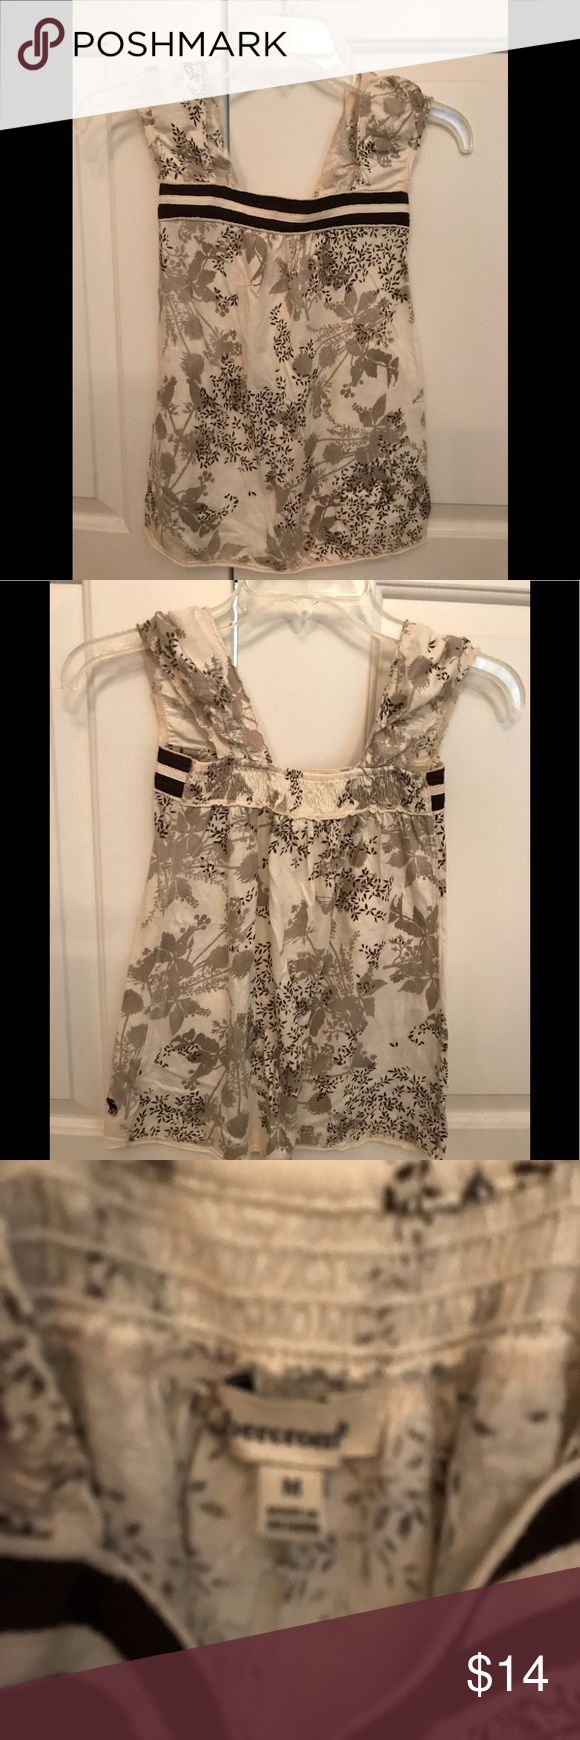 Abercrombie girl's top Sleeveless with wide strap, cream & light brown print abercrombie kids Shirts & Tops Tank Tops